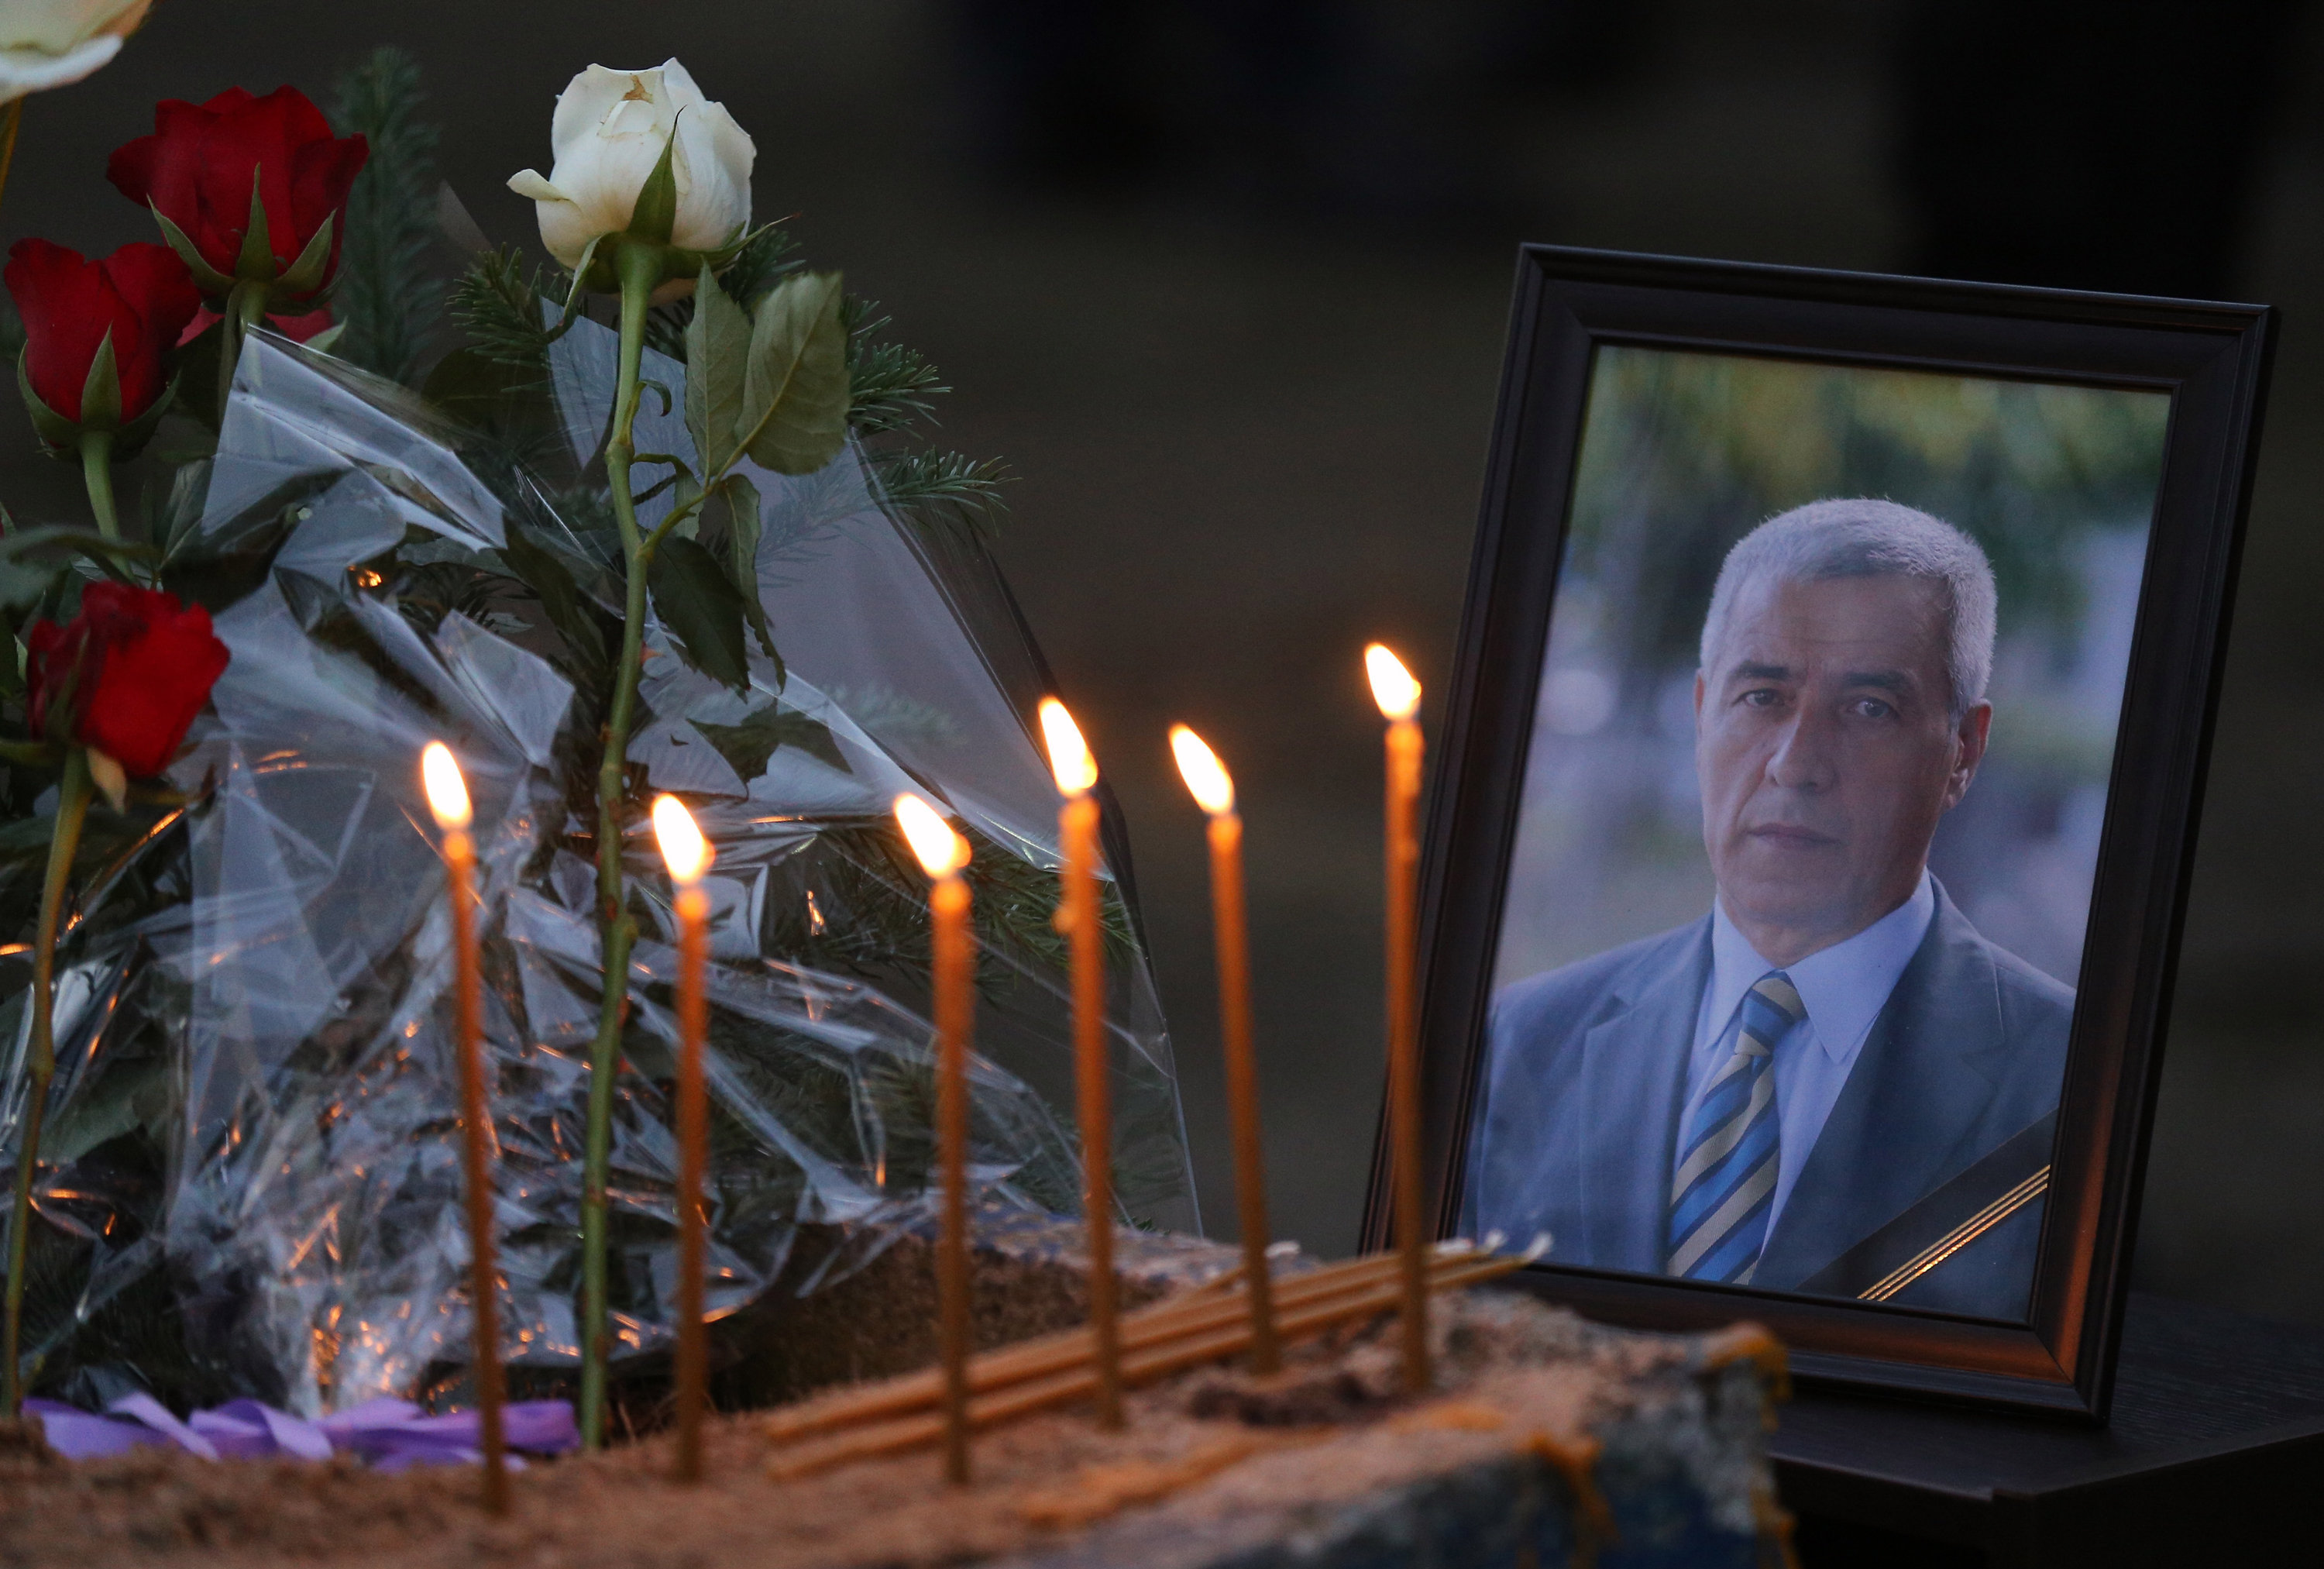 Flowers, candles and a picture of Kosovo Serb politician Oliver Ivanovic, who was shot dead Tuesday morning by still-unknown assailants, at the scene of the shooting in front of his office in the northern, Serb-dominated part of Mitrovica, Kosovo, Tuesday, Jan. 16, 2018